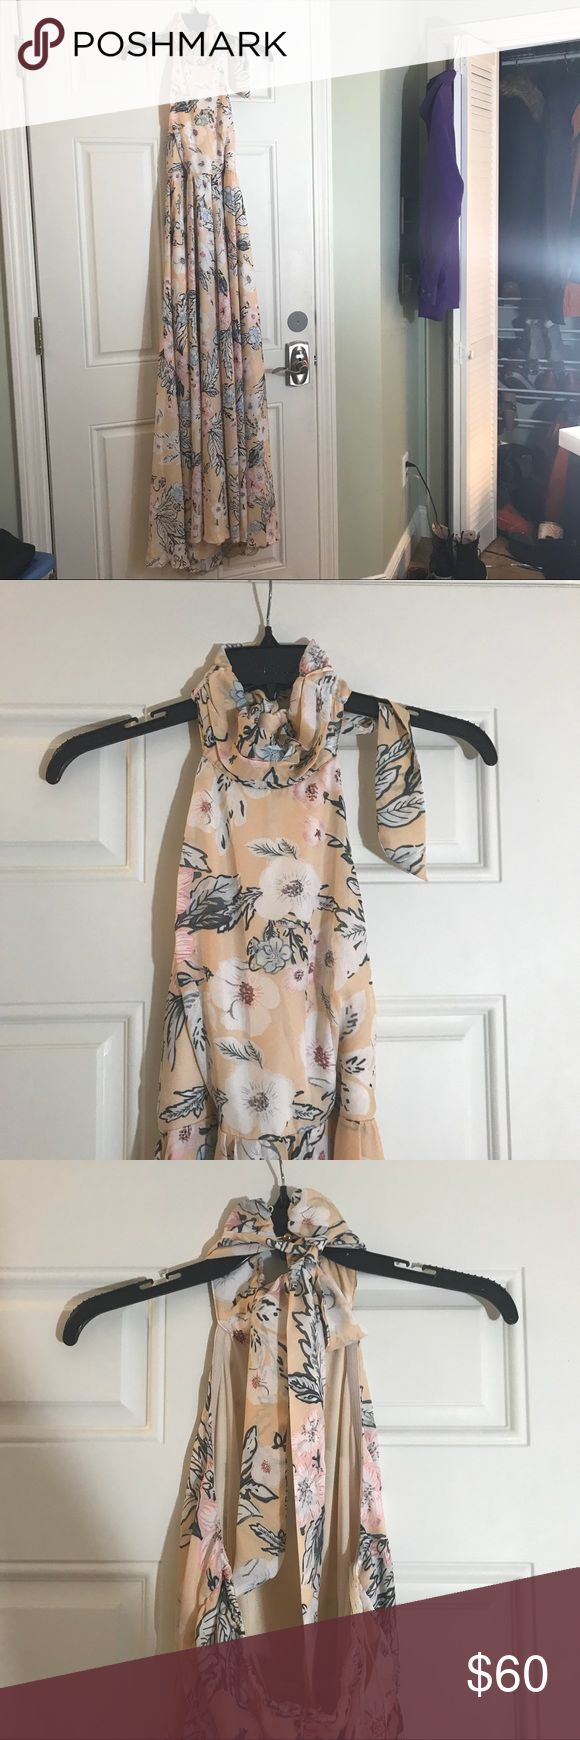 NWT Floral halter Maxi dress Beautiful halter maxi dress. Never worn. I'm obsess with it but it's too long for me. It's missing a button on the back of the neck but it also has a tie for the choker as well so it's still secure. New with tags: originally $89.95. Dresses Maxi